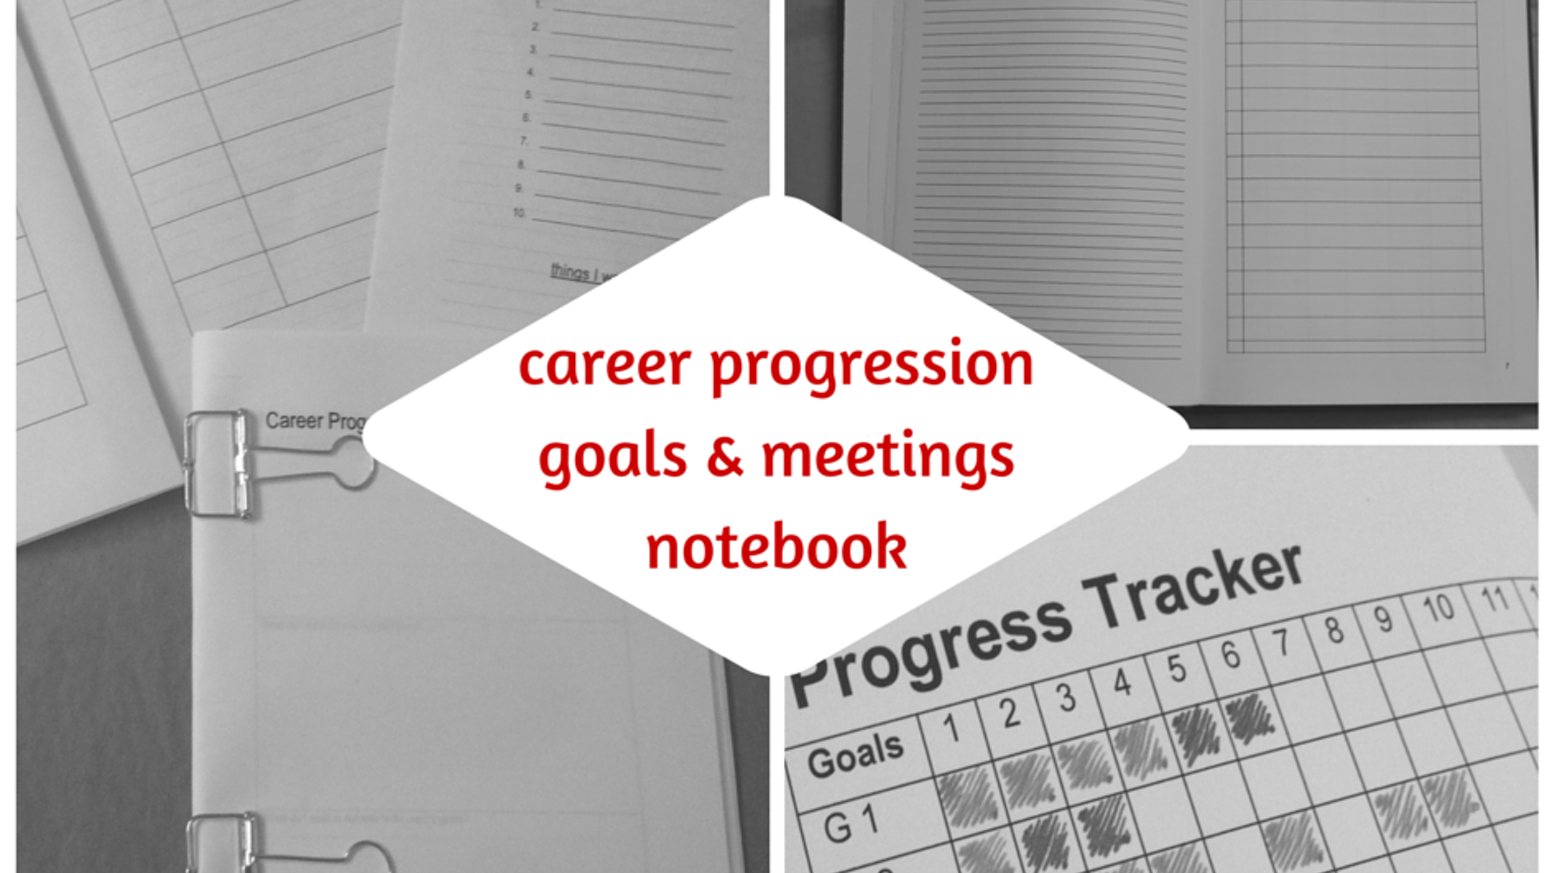 A functional notebook and planner designed to help you reach your career goals and plan for your performance reviews more effectively.